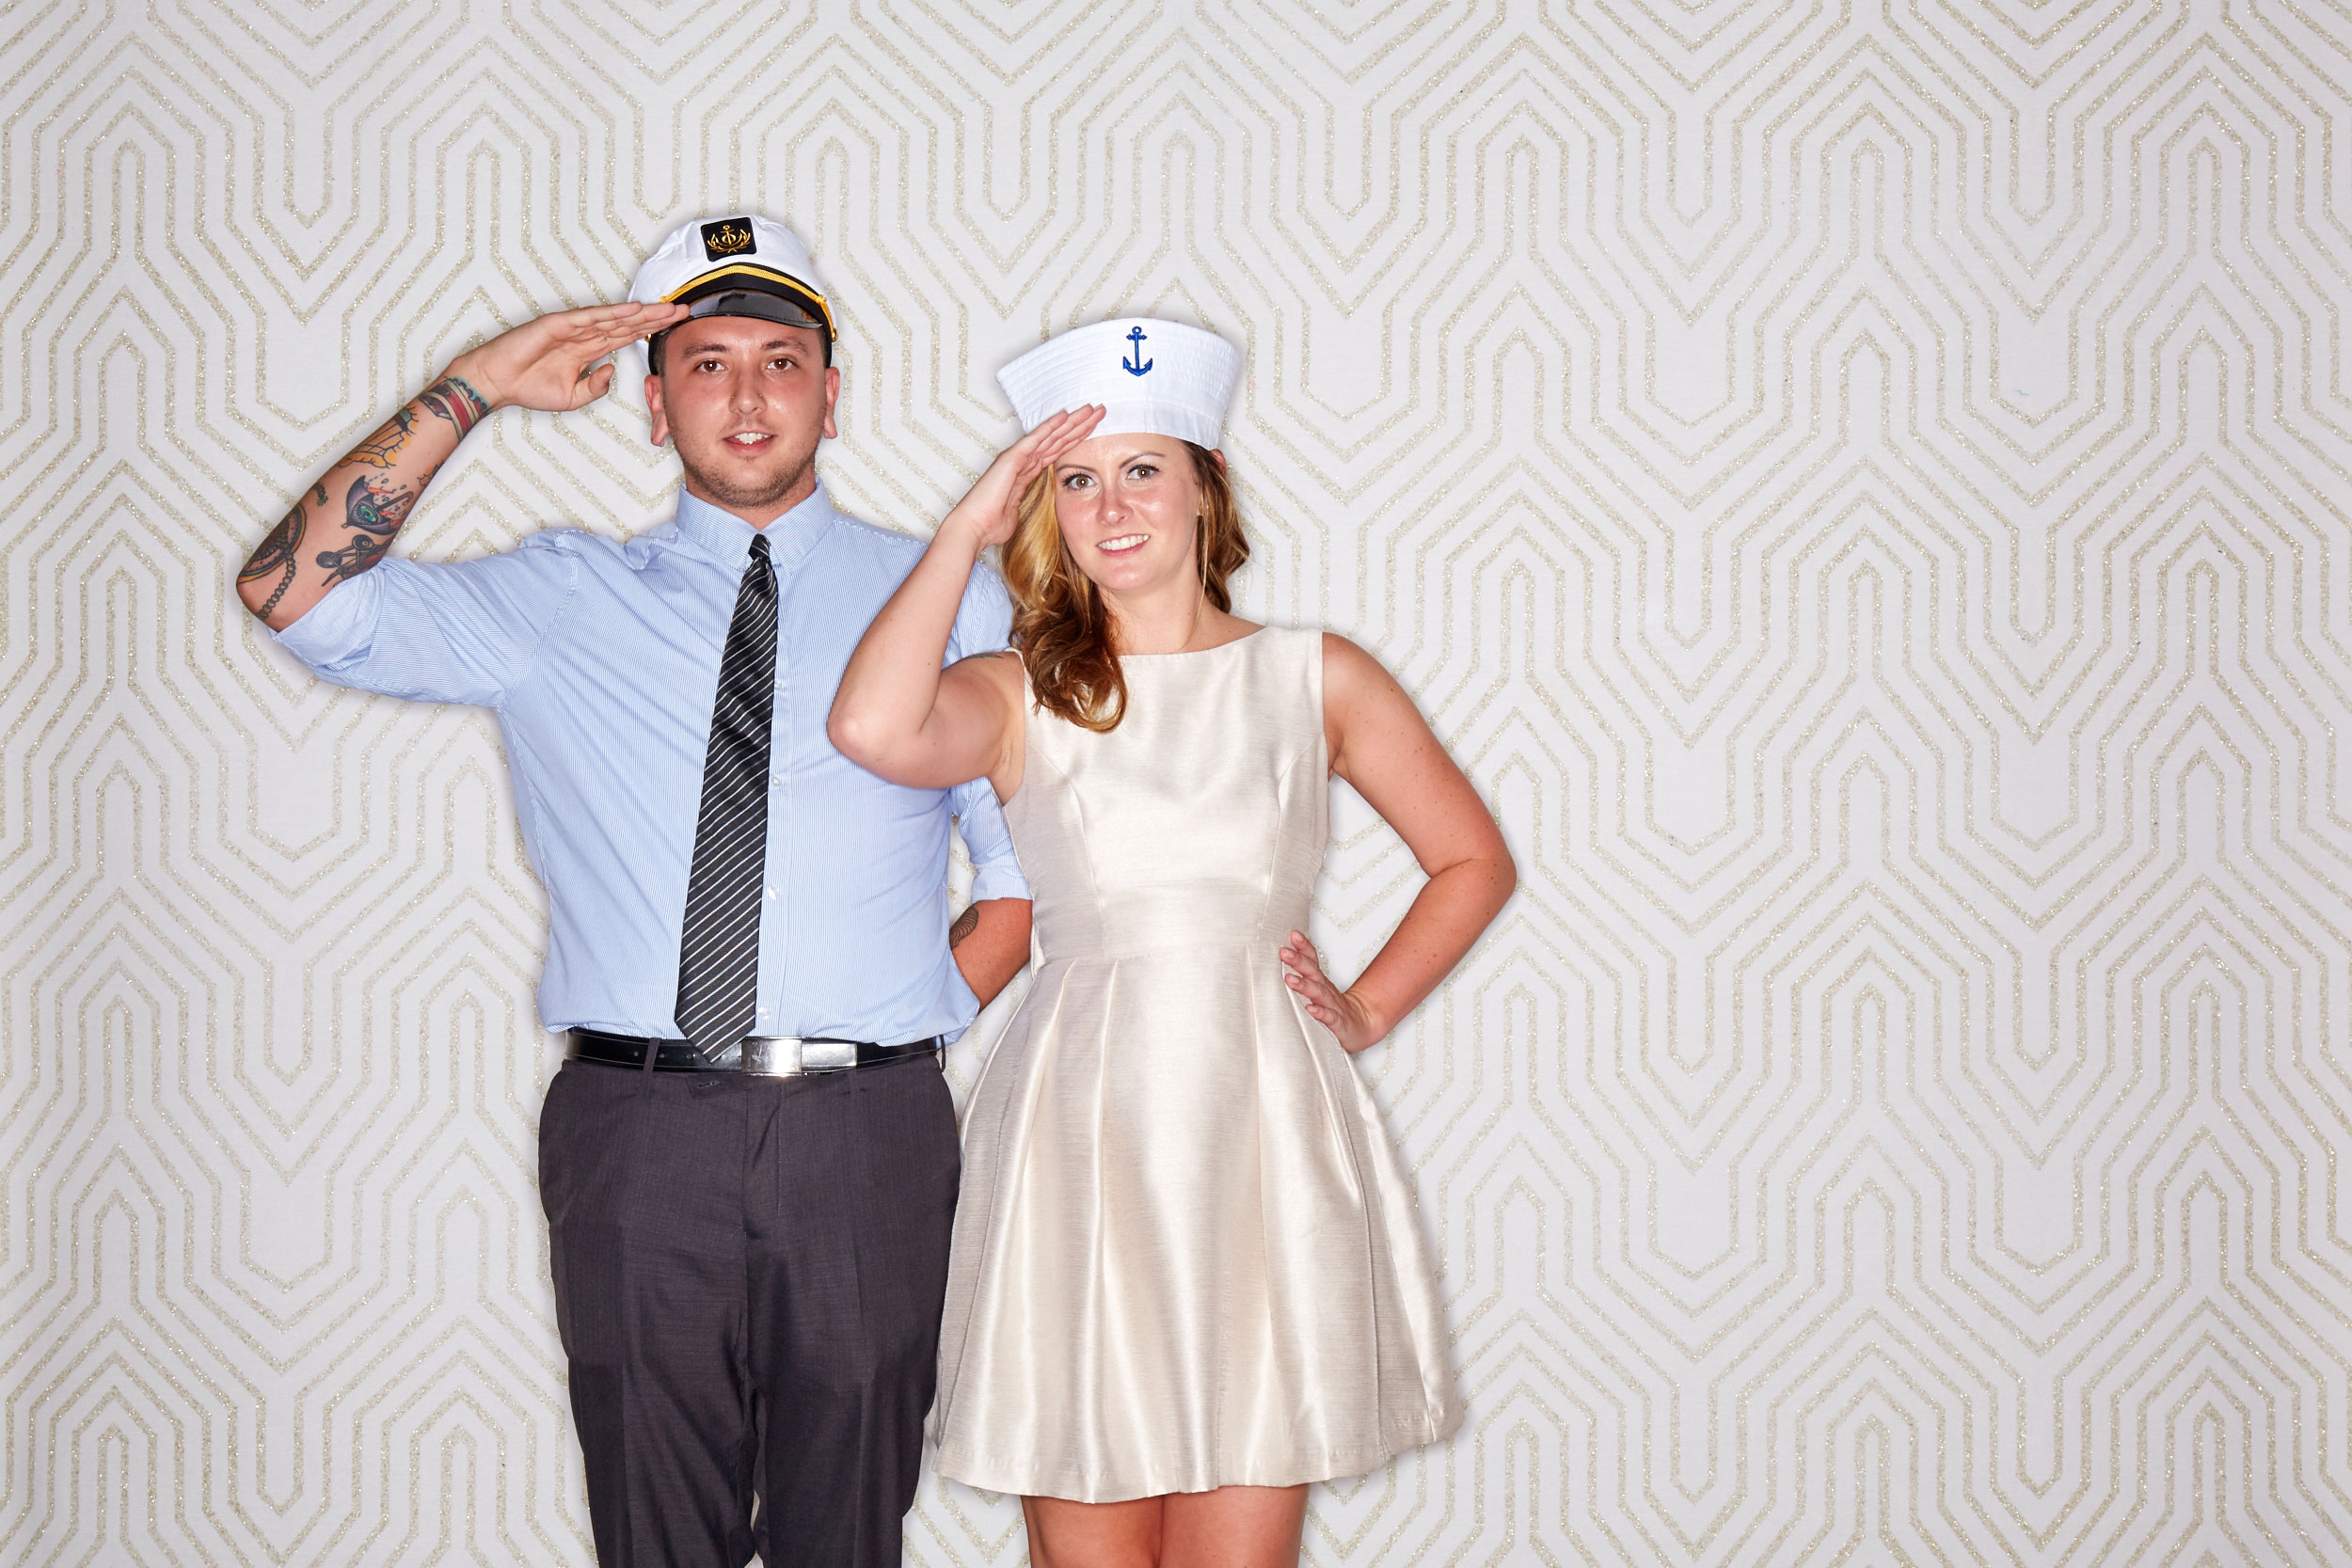 louisville-photo-booth-105.jpg